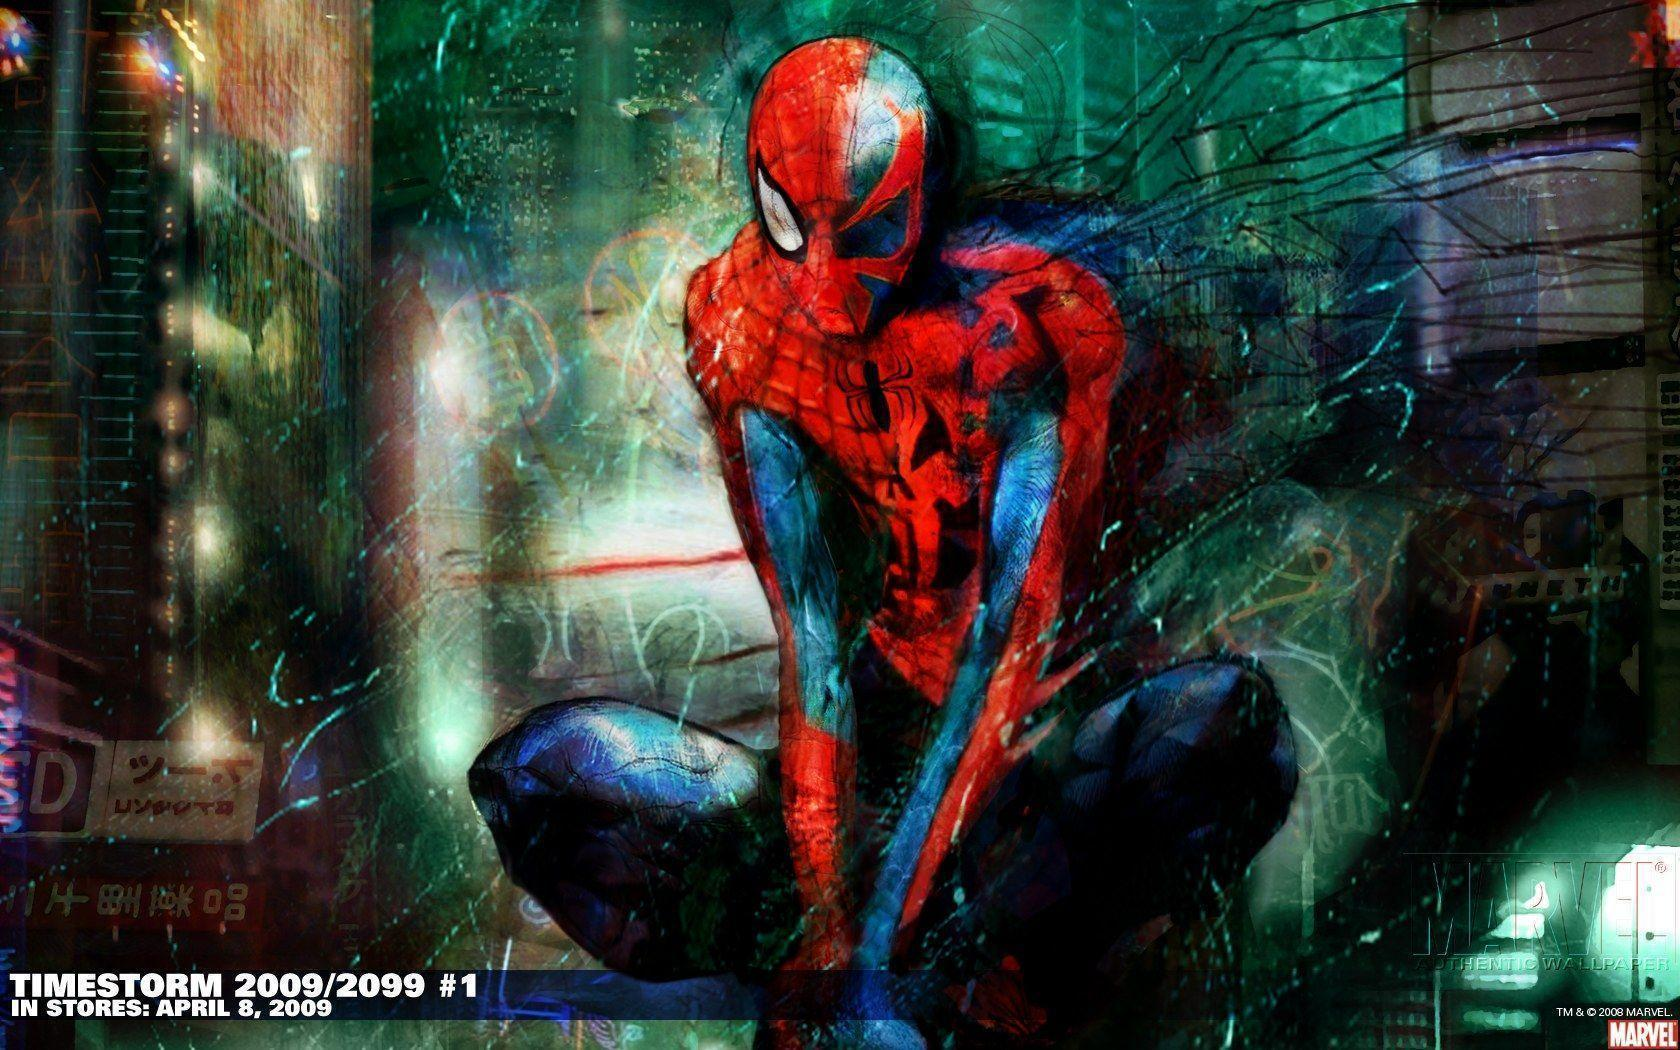 marvel wallpaper widescreen - www.